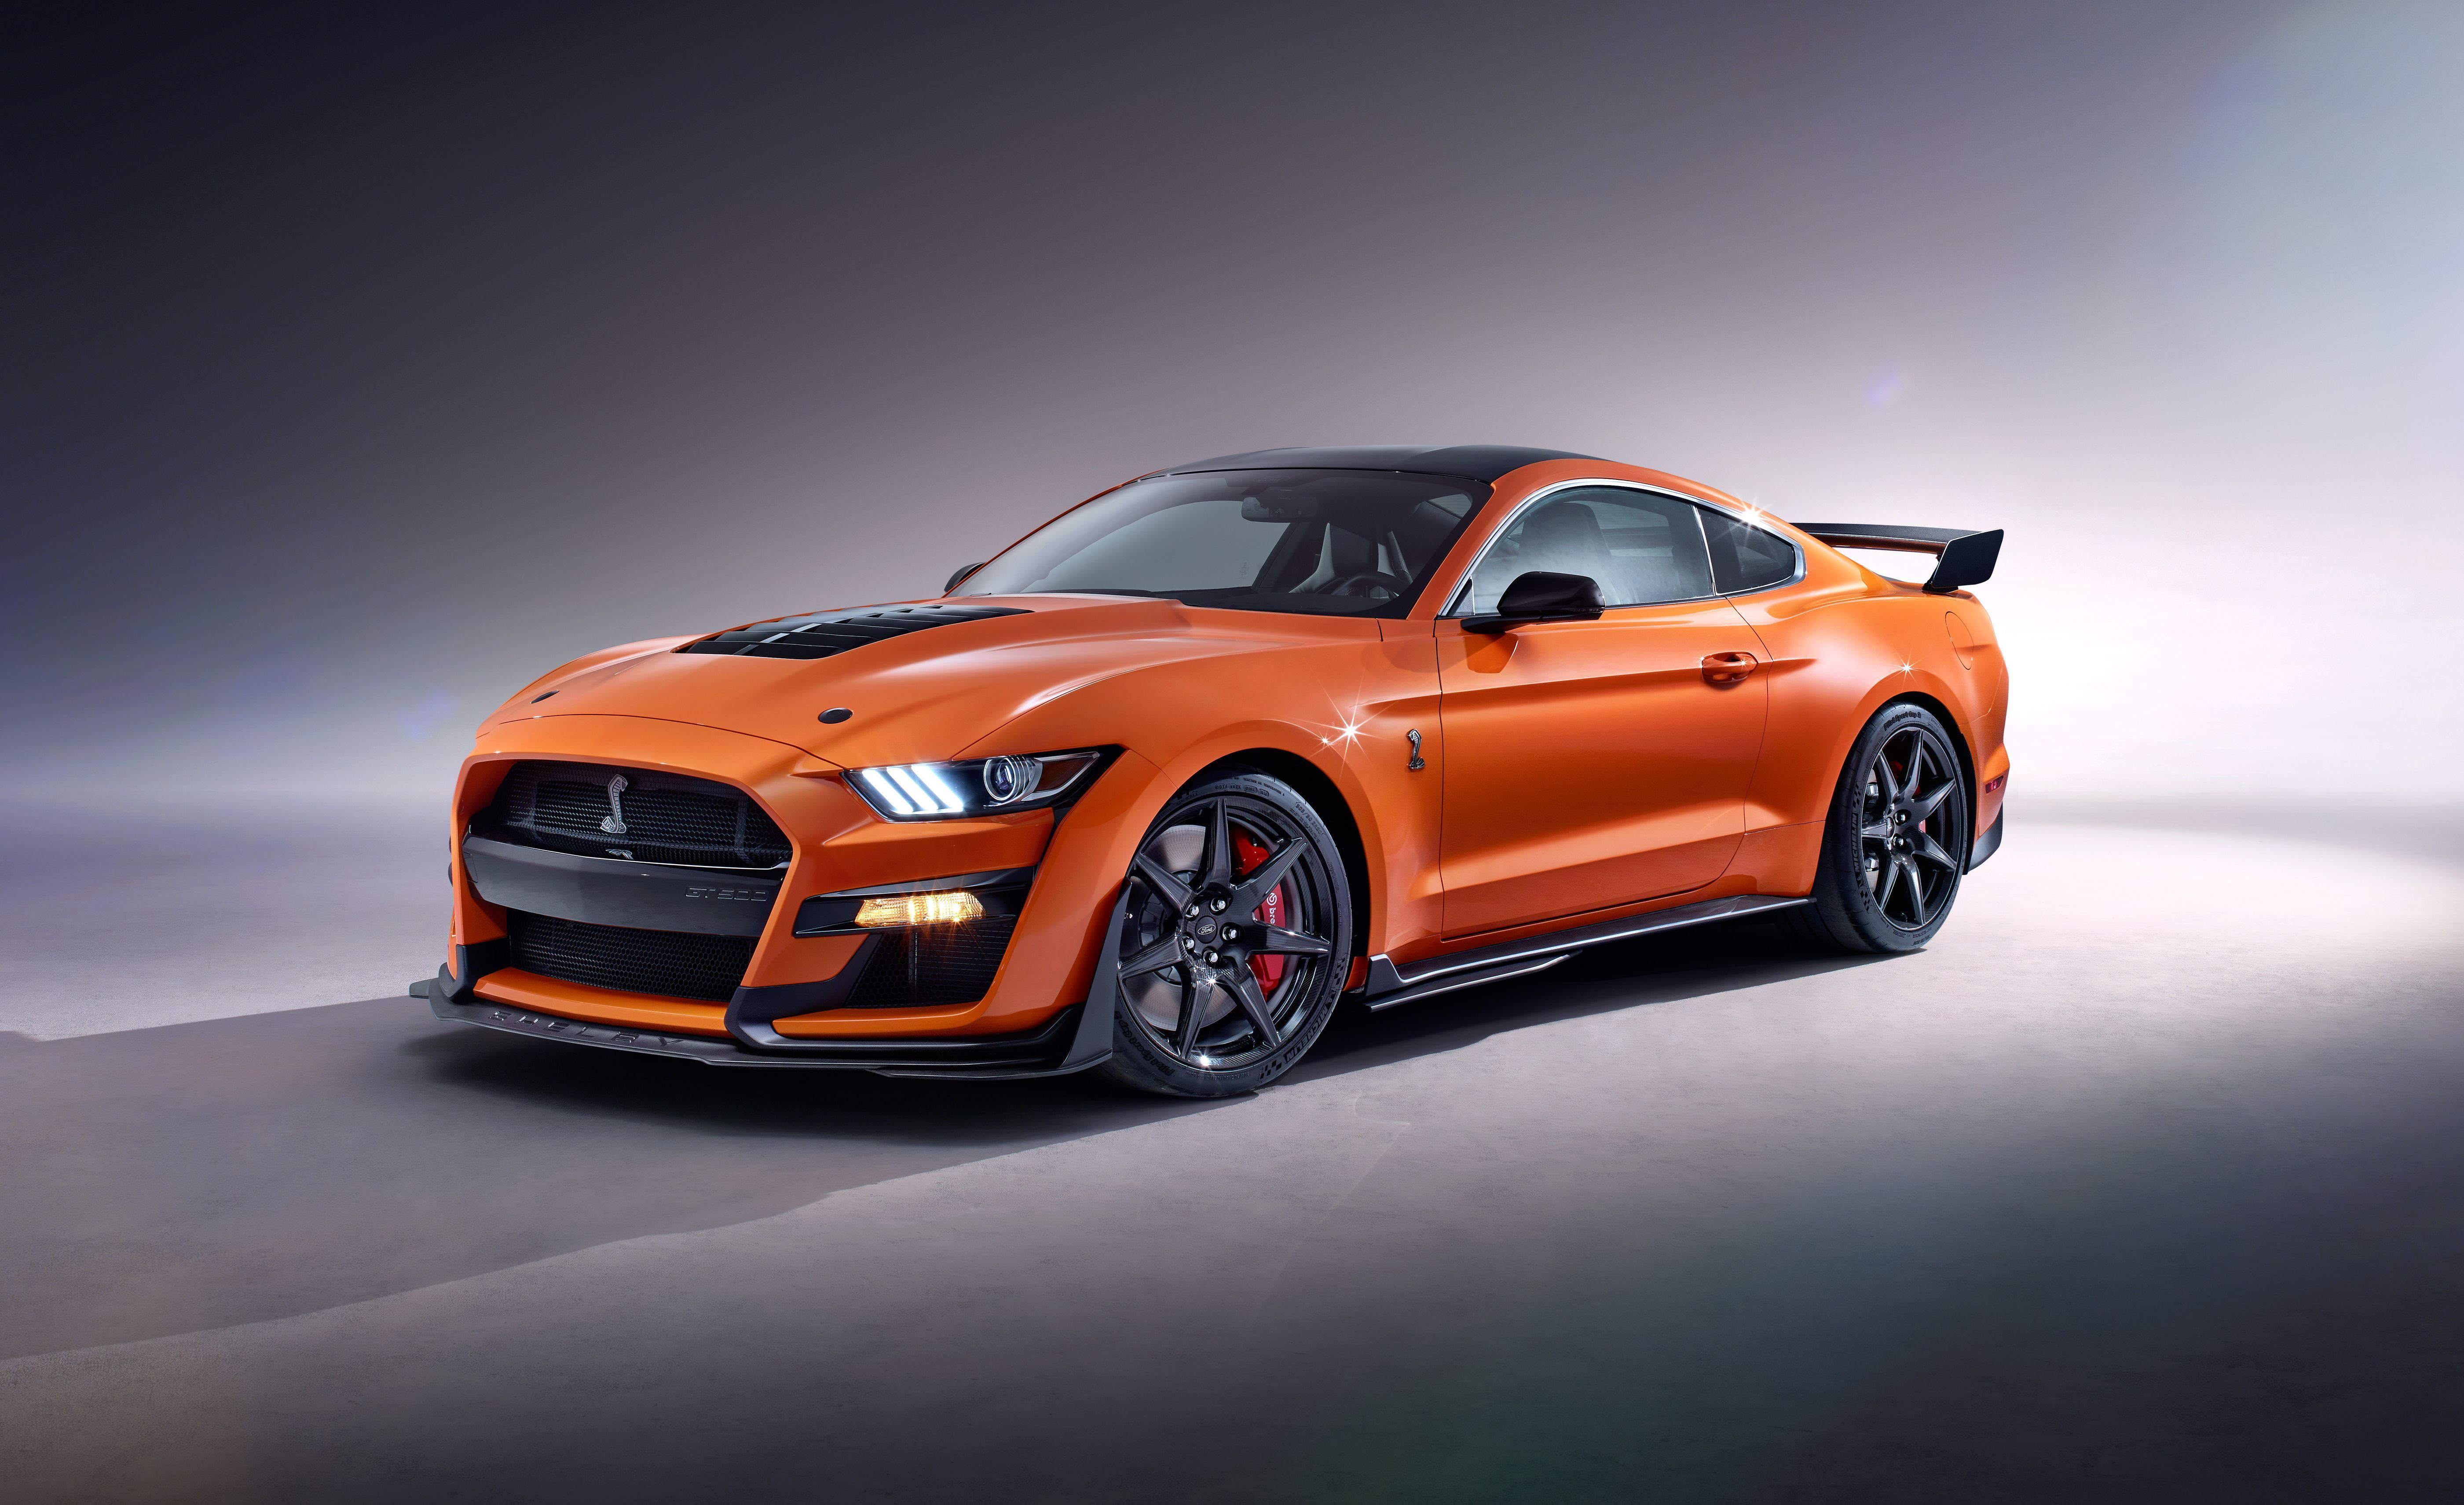 2020 Ford Mustang Redesign And Release Ford Mustang Shelby Gt500 Mustang Gt500 Ford Mustang Gt500